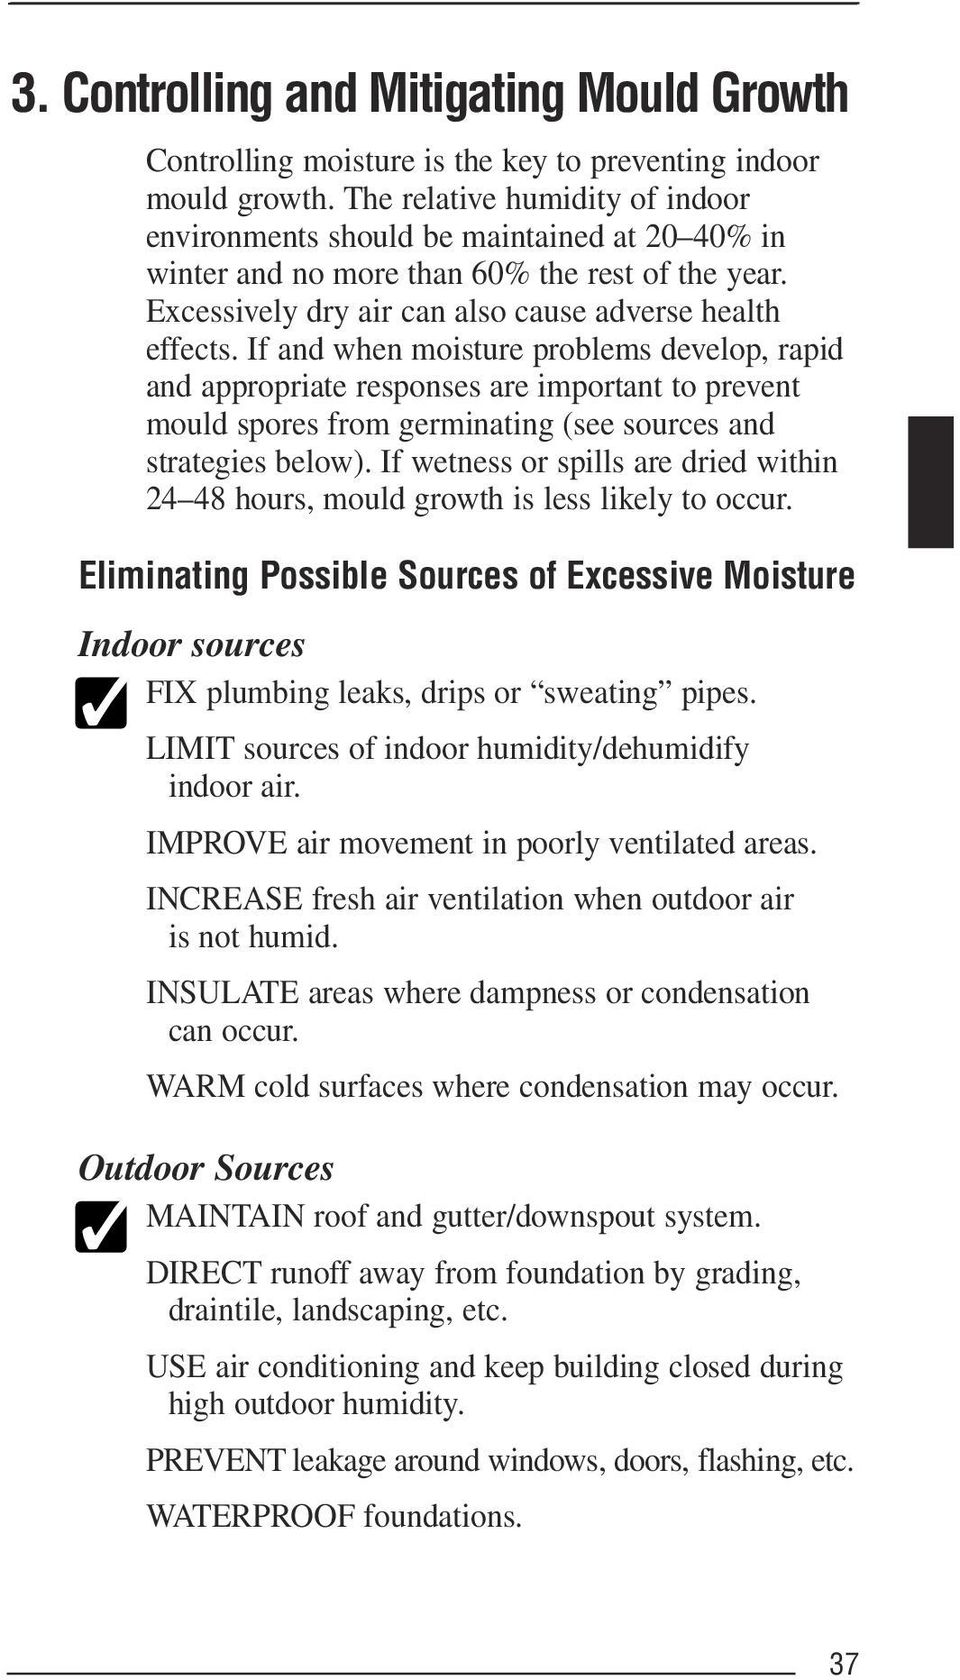 If and when moisture problems develop, rapid and appropriate responses are important to prevent mould spores from germinating (see sources and strategies below).